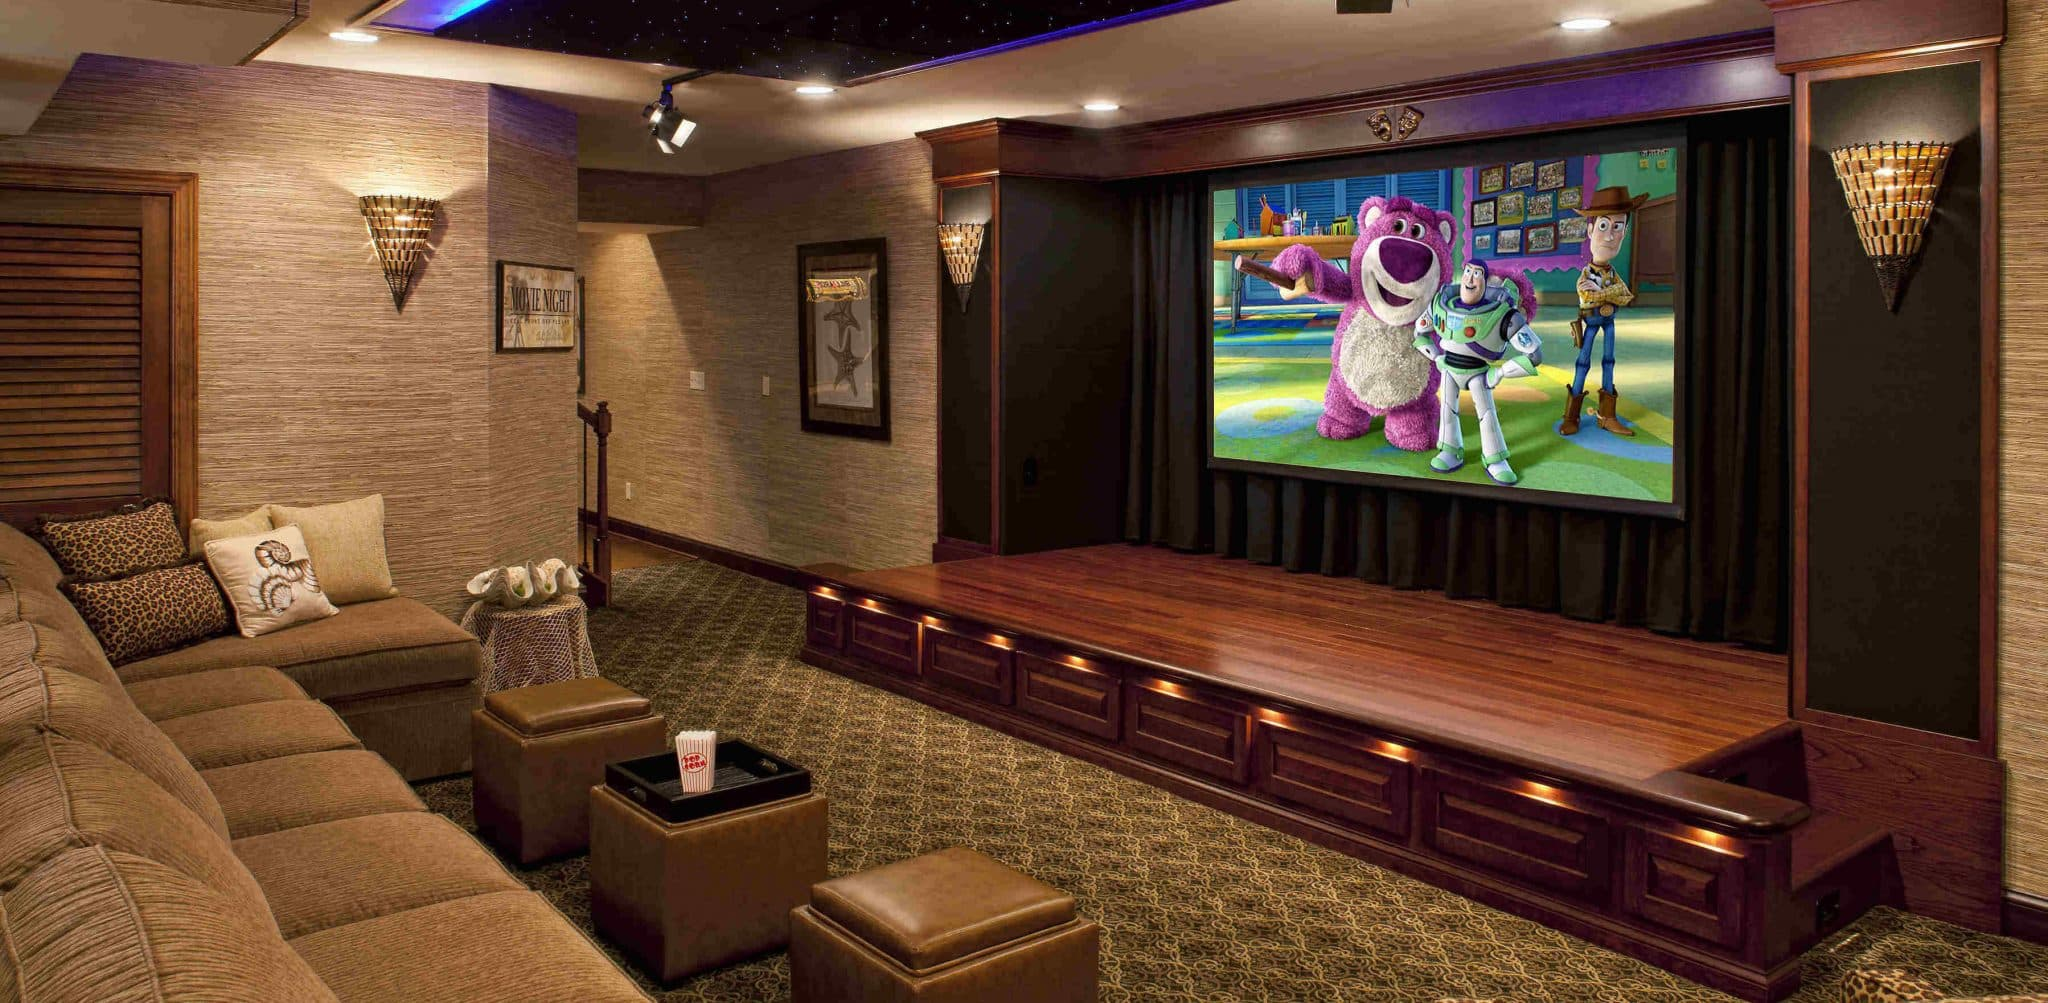 Home Theater Design Ideas Pictures Tips Options HGTV Luxurious - Home theater design group